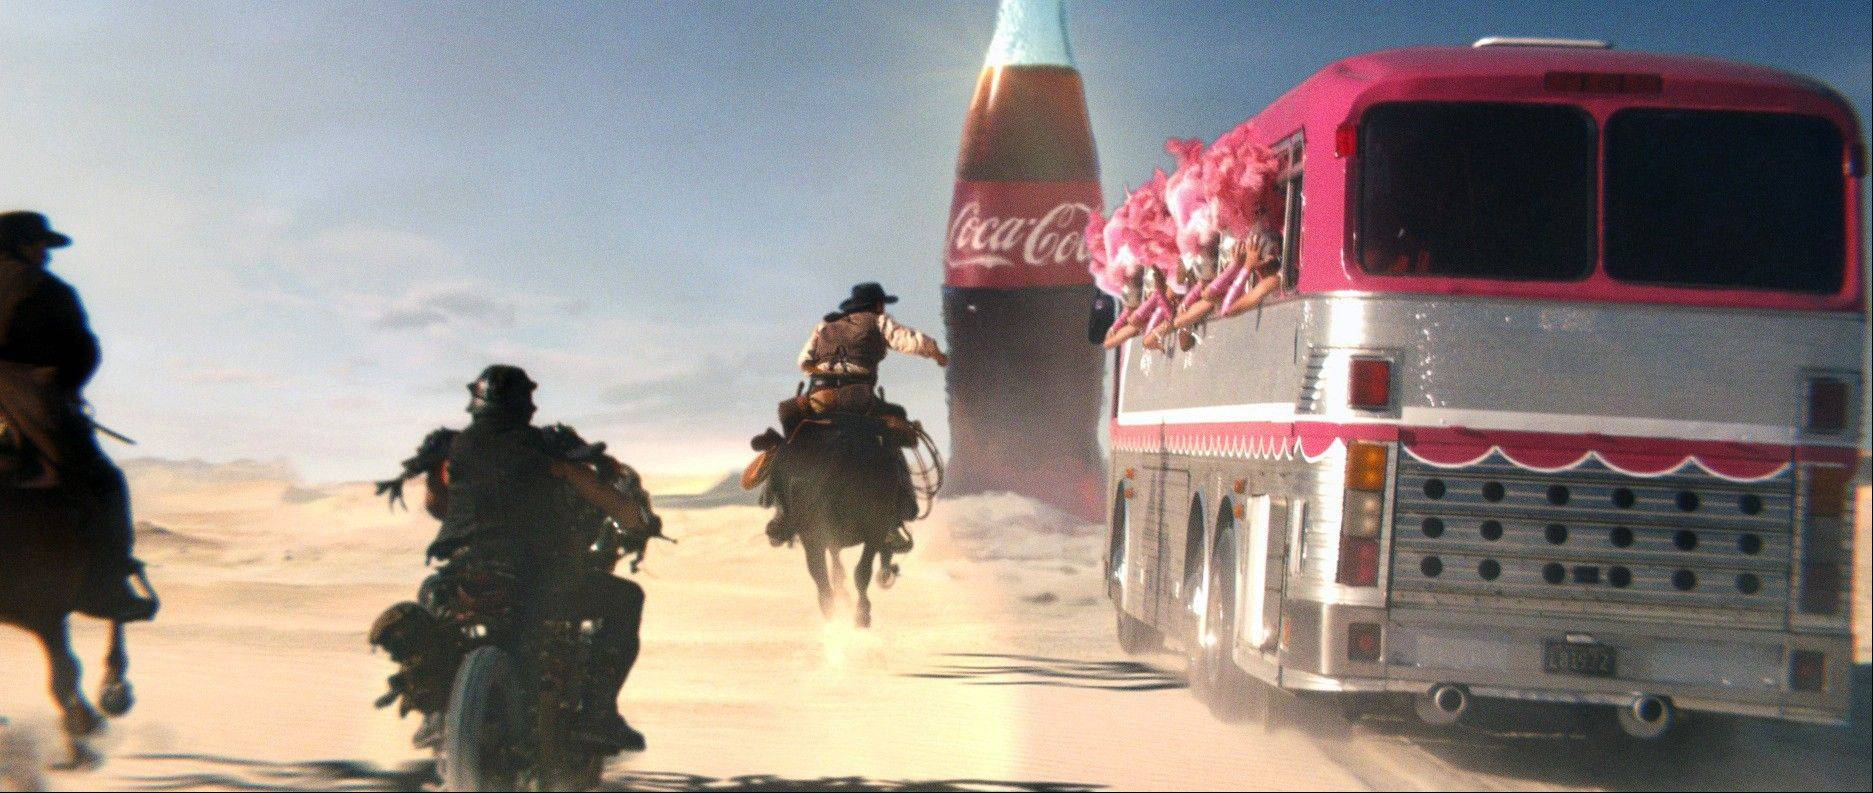 You didn't have to be a football player to be a part of the action on Super Bowl Sunday. In its Super Bowl ad, Coca-Cola asked people to vote among three groups competing for a Coke in the desert.